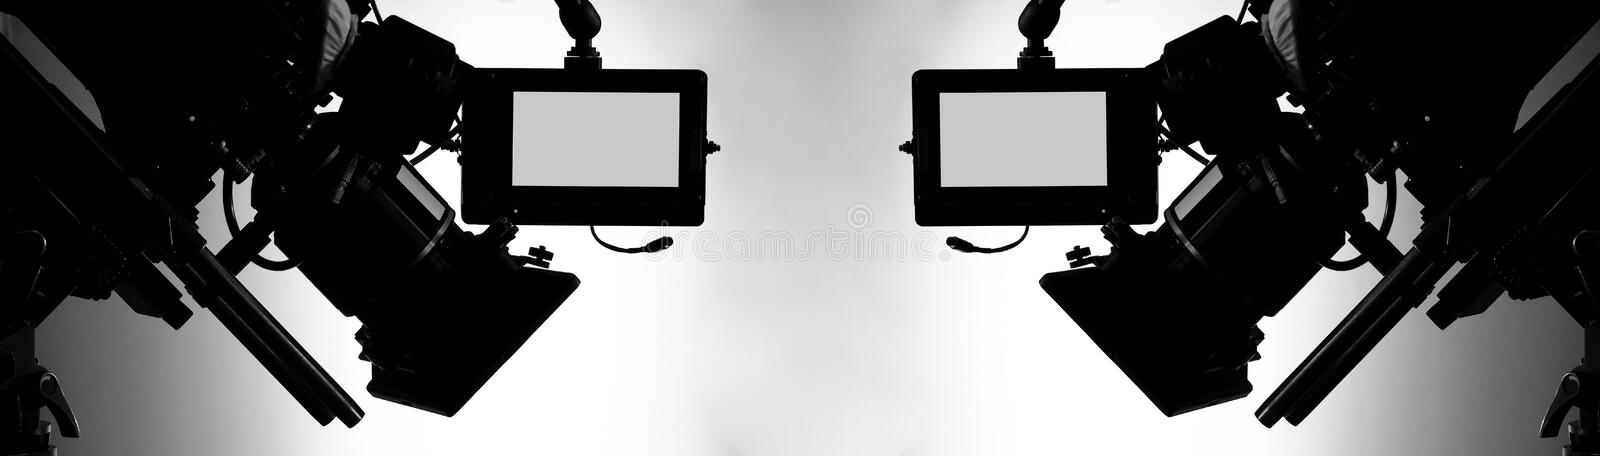 Silhouette images of video camera in tv commercial studio production. Which operating or shooting by cameraman and film crew team in set and prop on stock photography